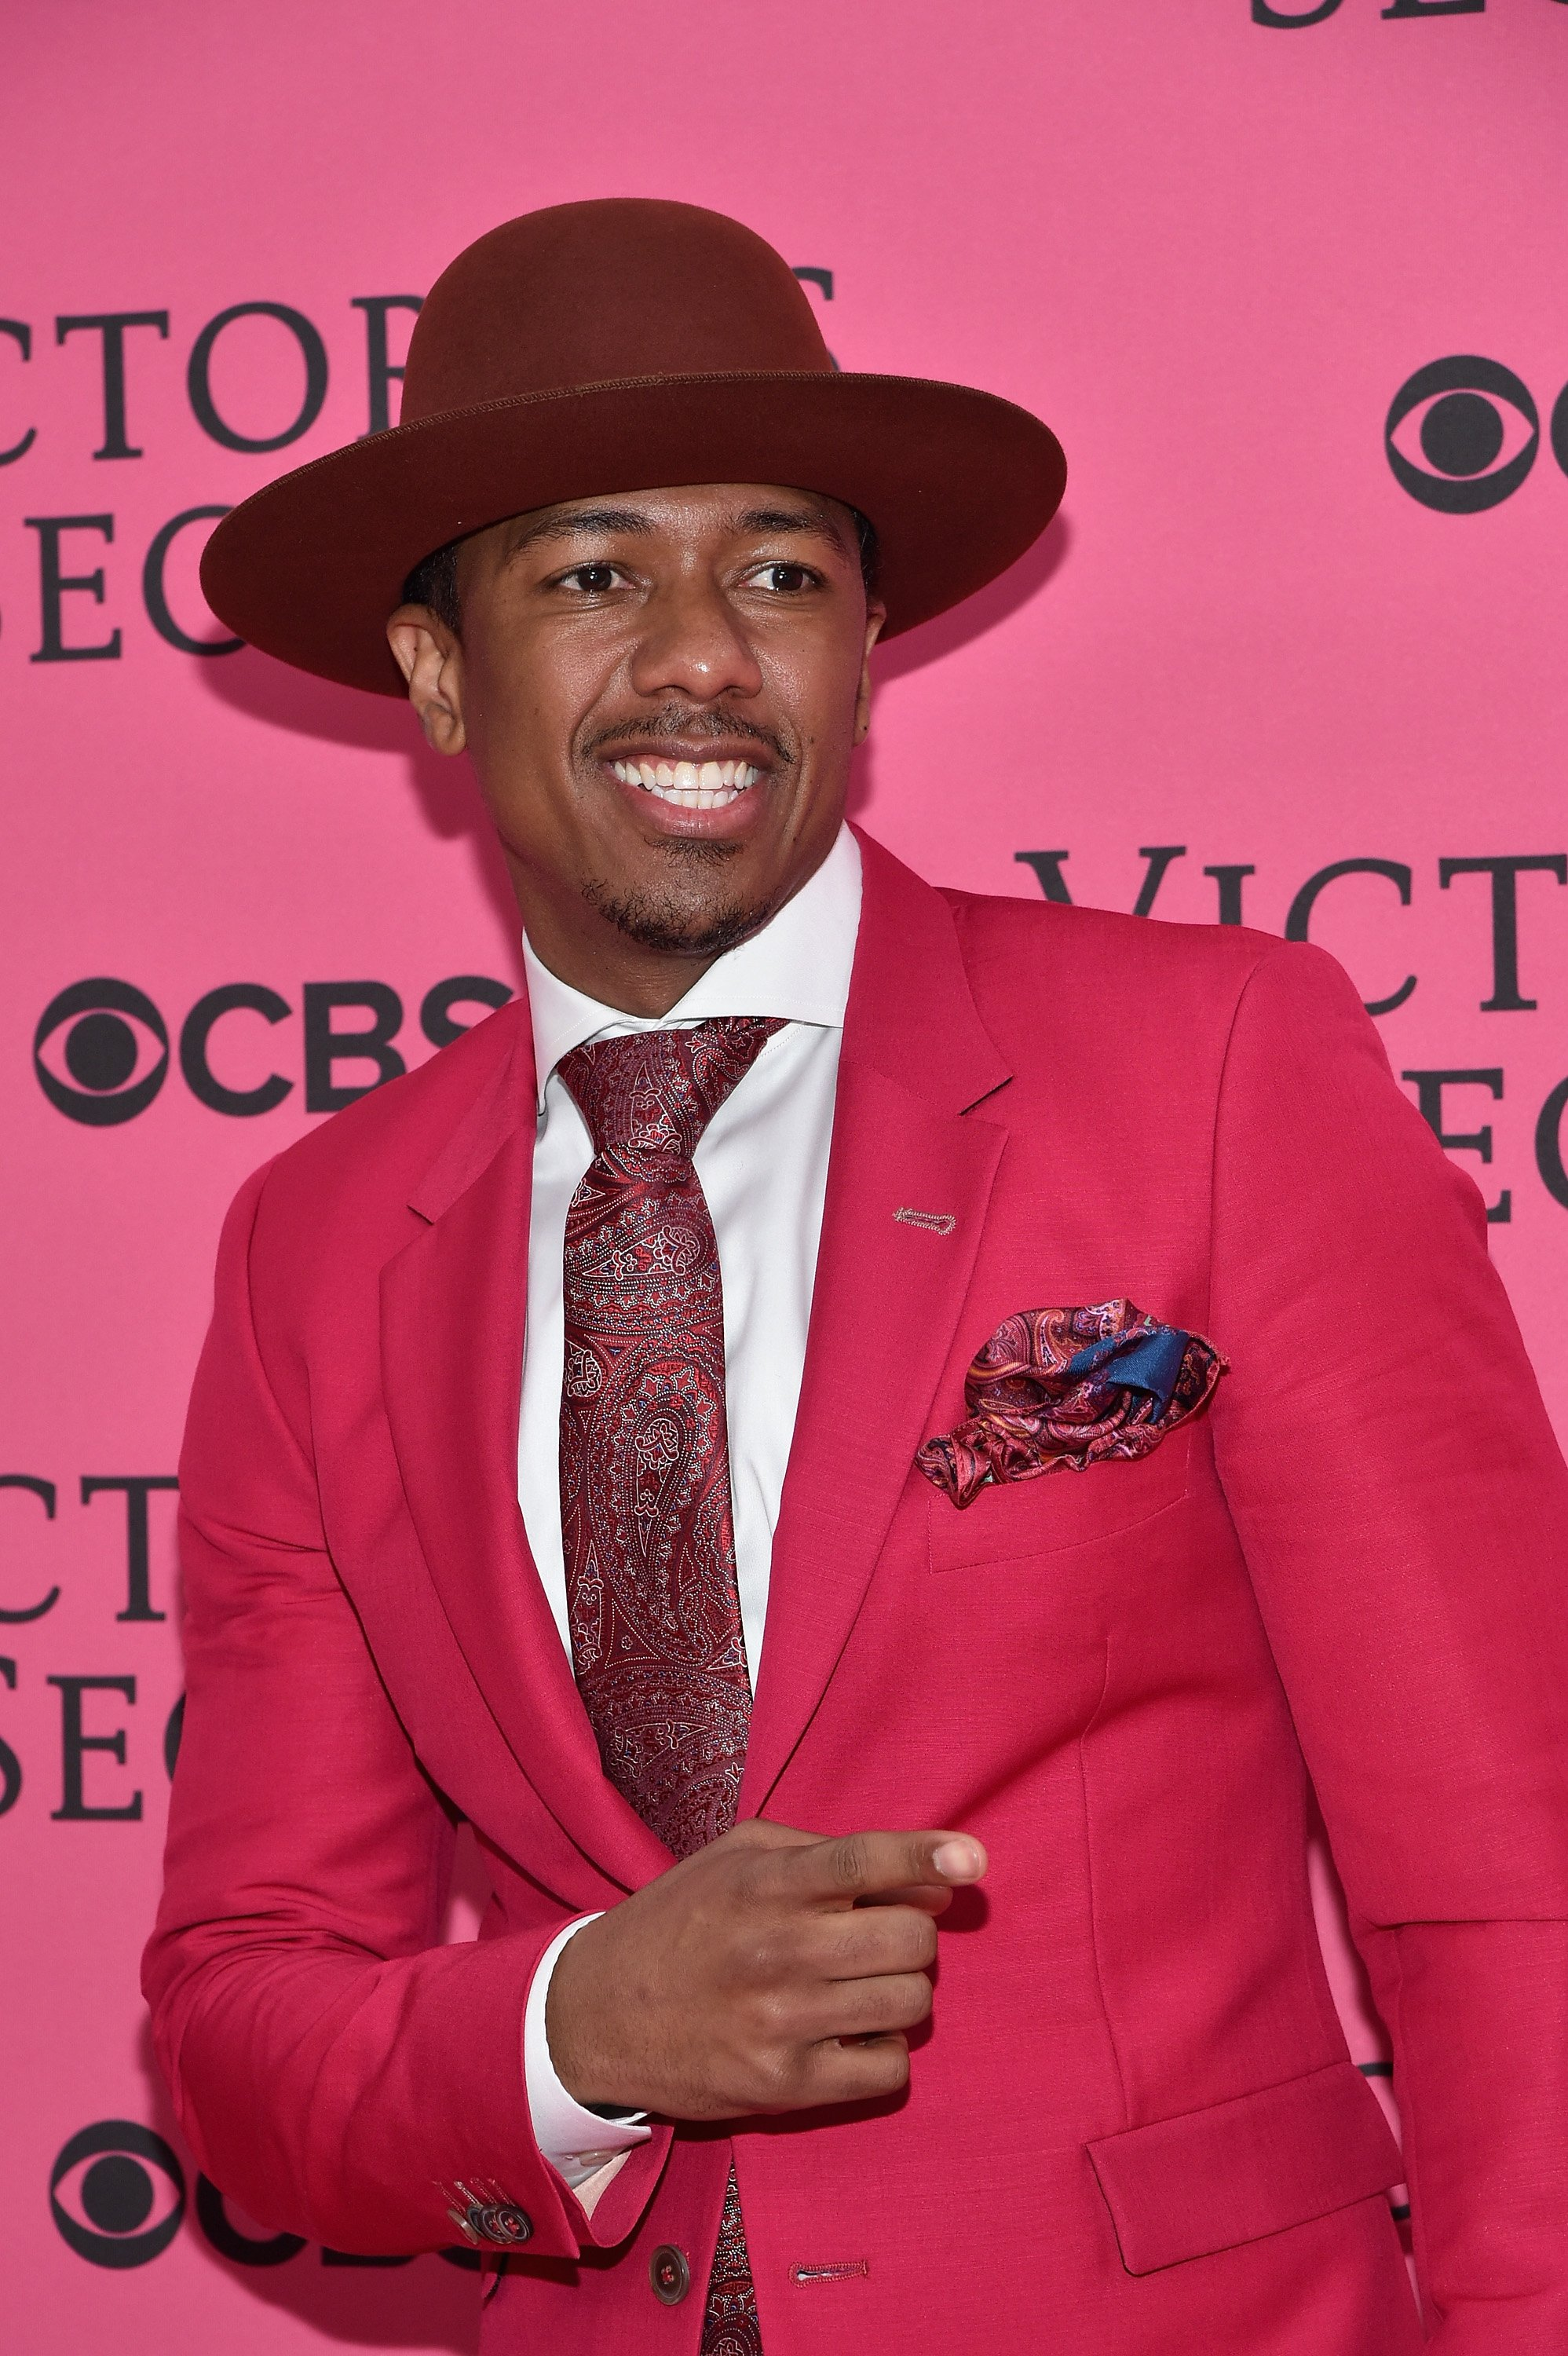 Nick Cannon poses at the 2015 Victoria's Secret Fashion Show on November 10, 2015. | Source: Getty Images